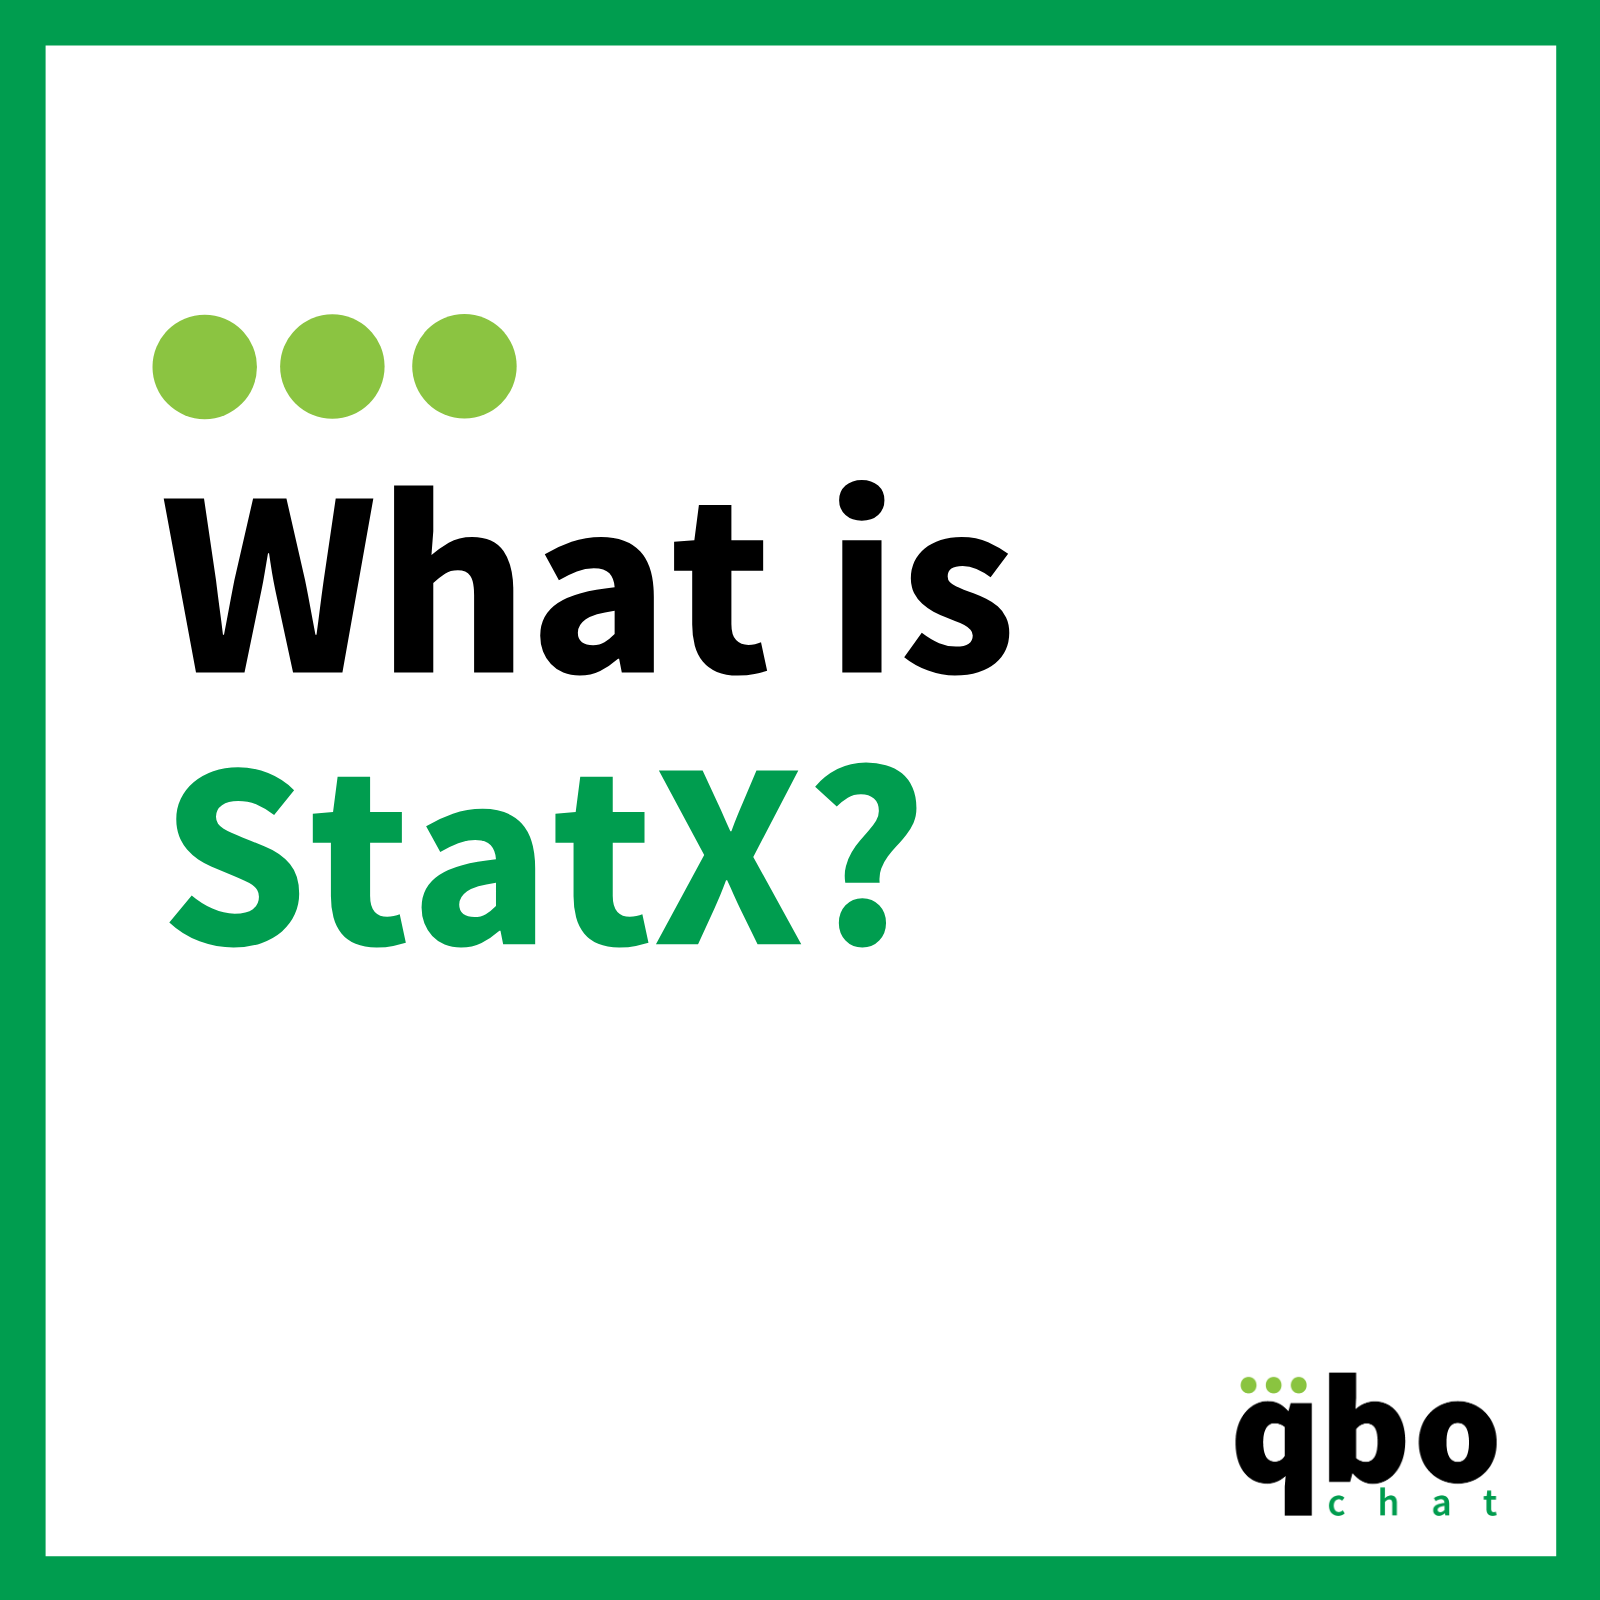 What is Statx?